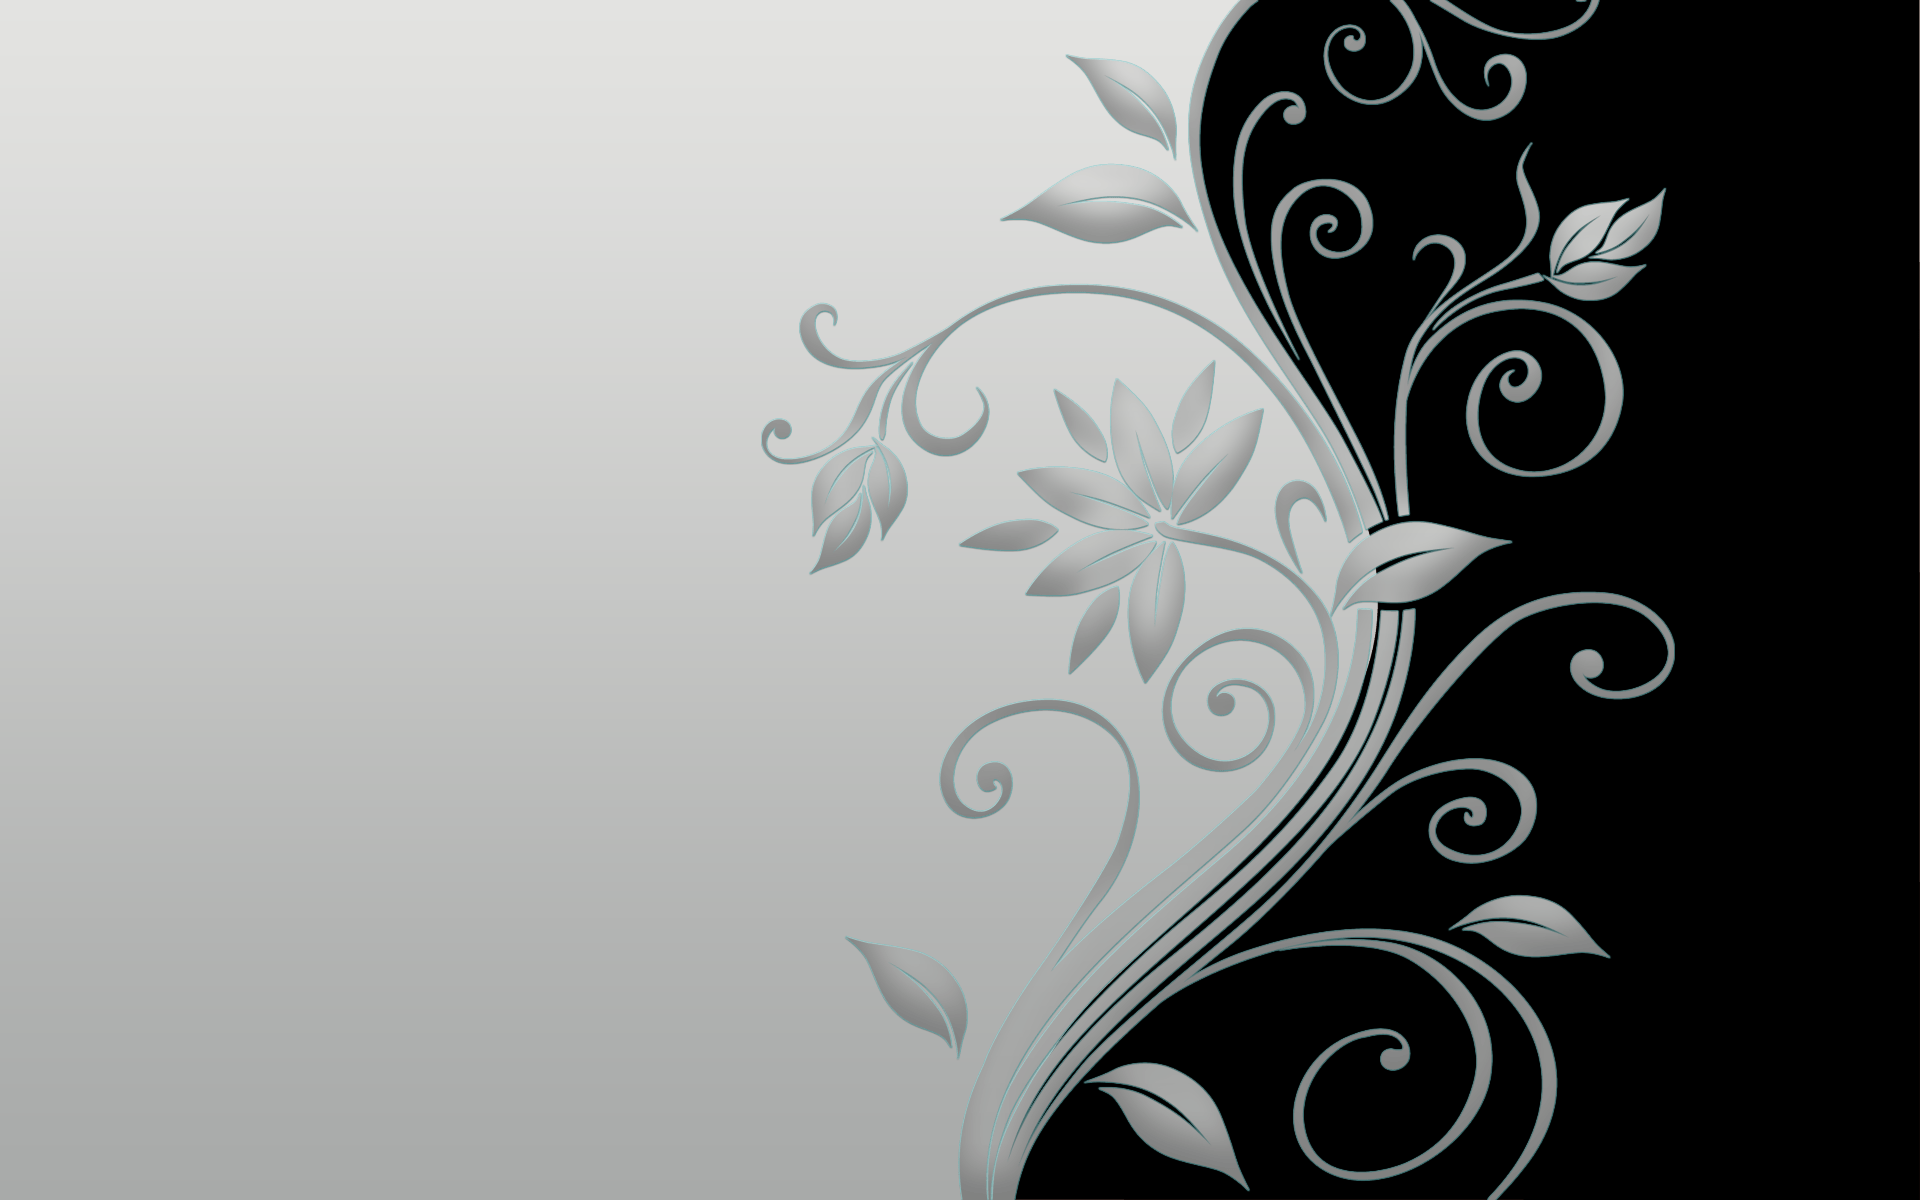 Hd wallpaper png - Confluence Clear By Nucu On Deviantart